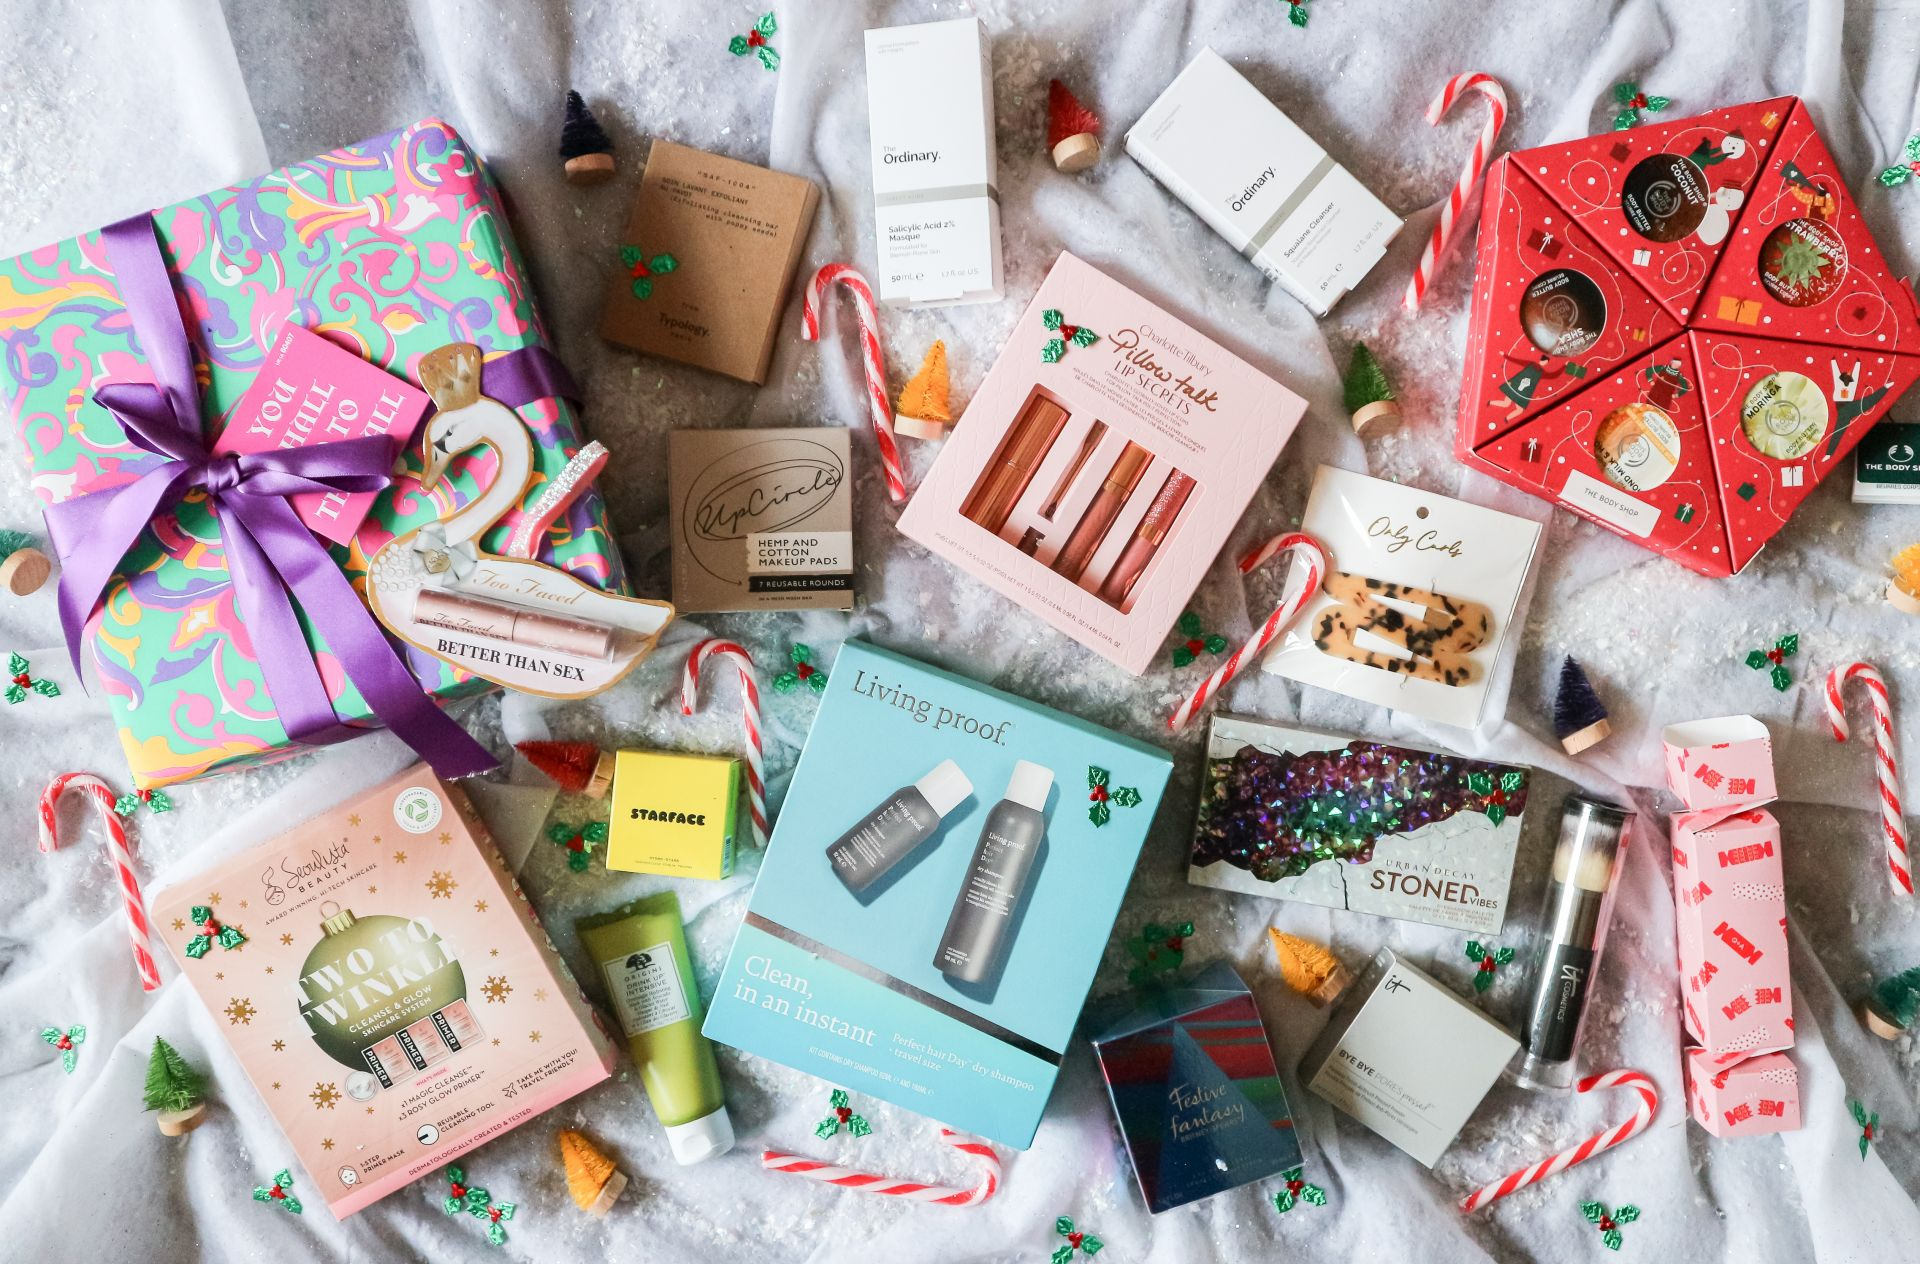 20s beauty Christmas gift guide